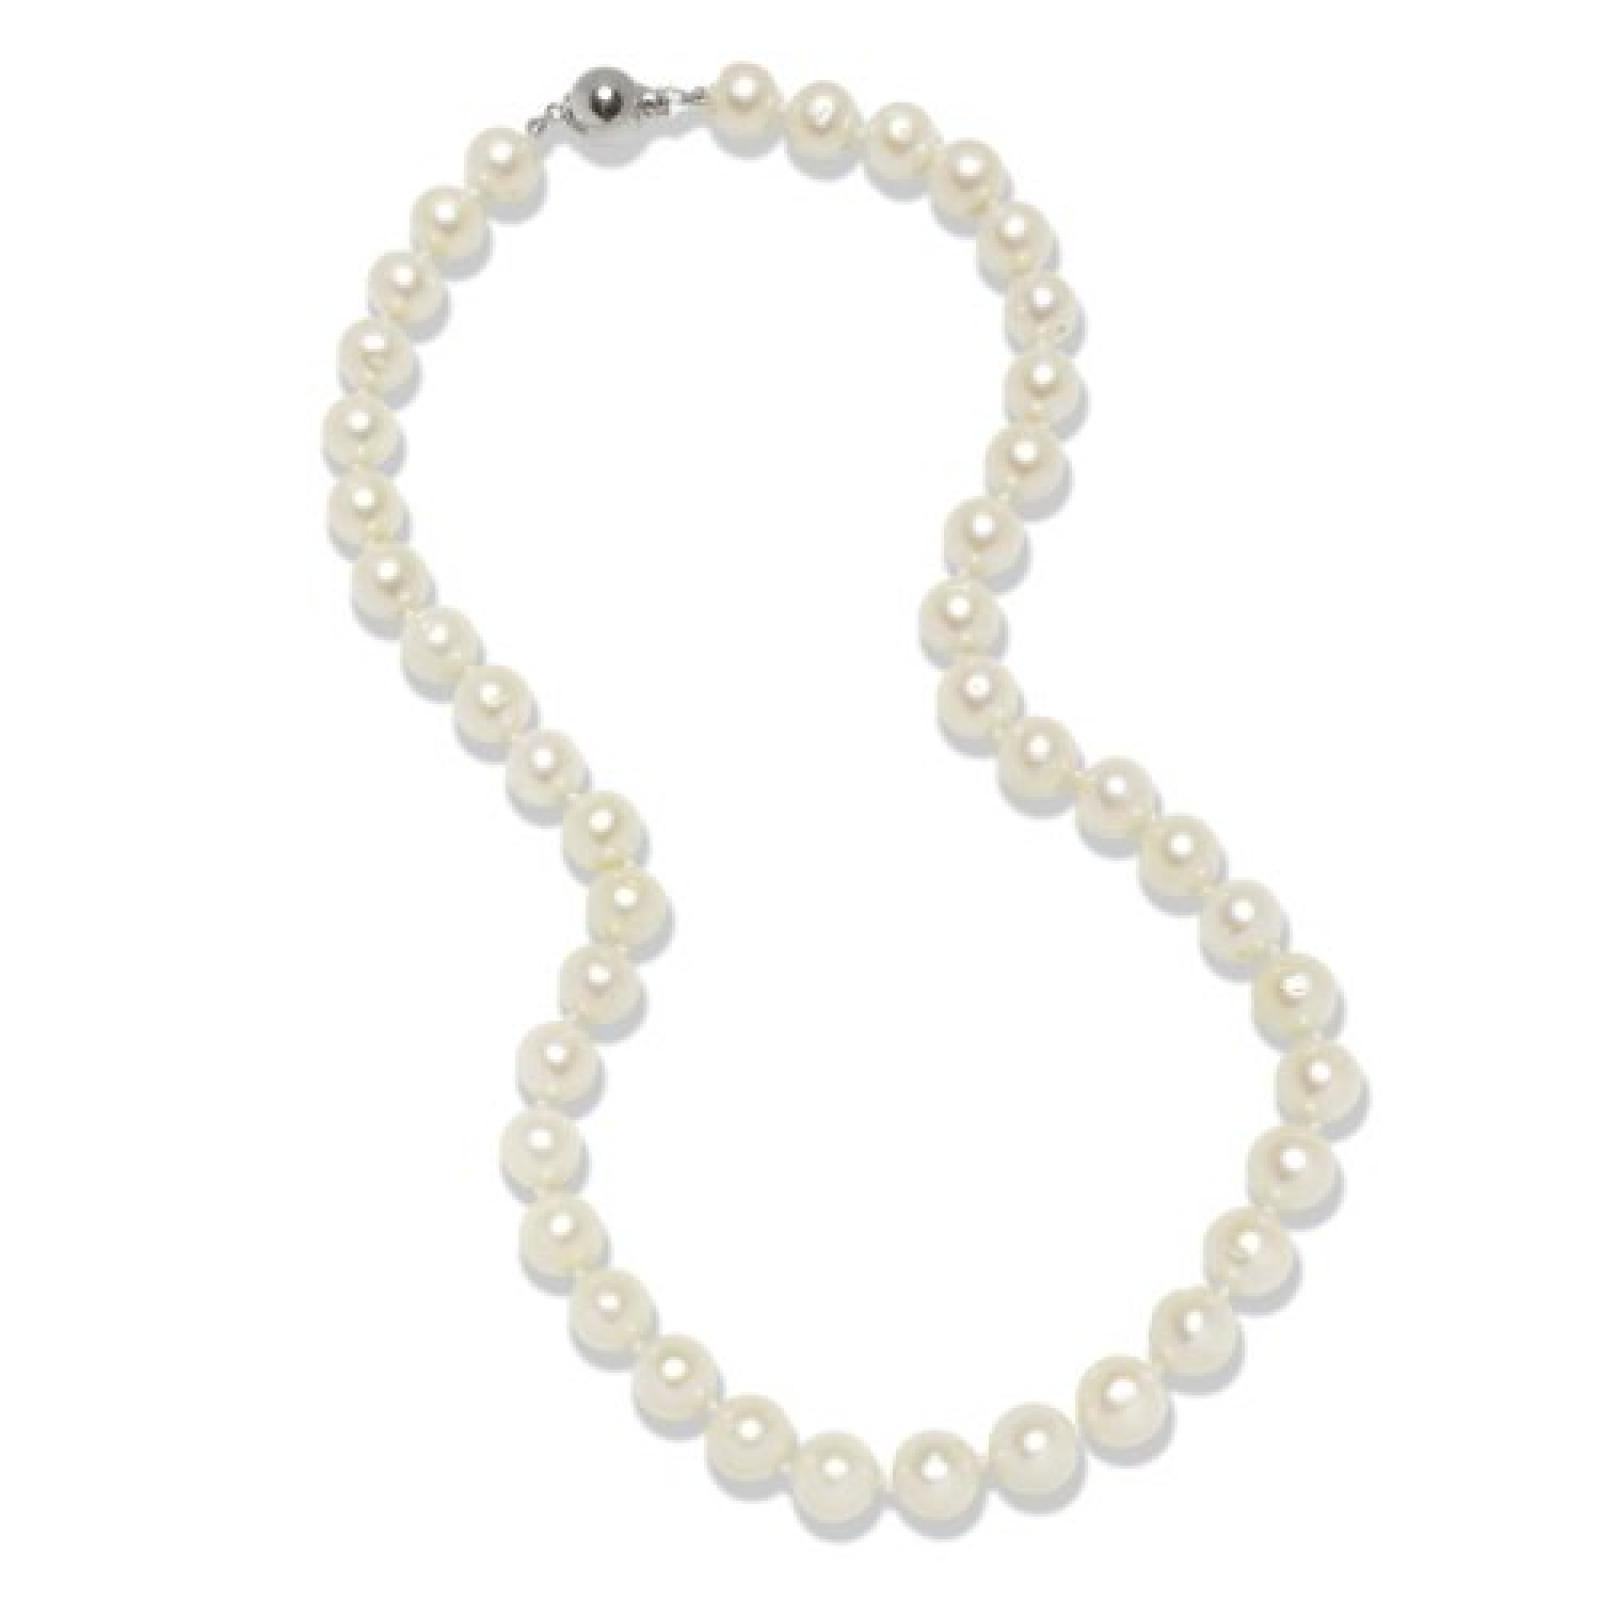 Valero Pearls Classic Collection Damen-Kette Hochwertige Süßwasser-Zuchtperlen in ca.  10 mm Rund weiß 925 Sterling Silber    45 cm + 5 cm Verlängerung   60201643